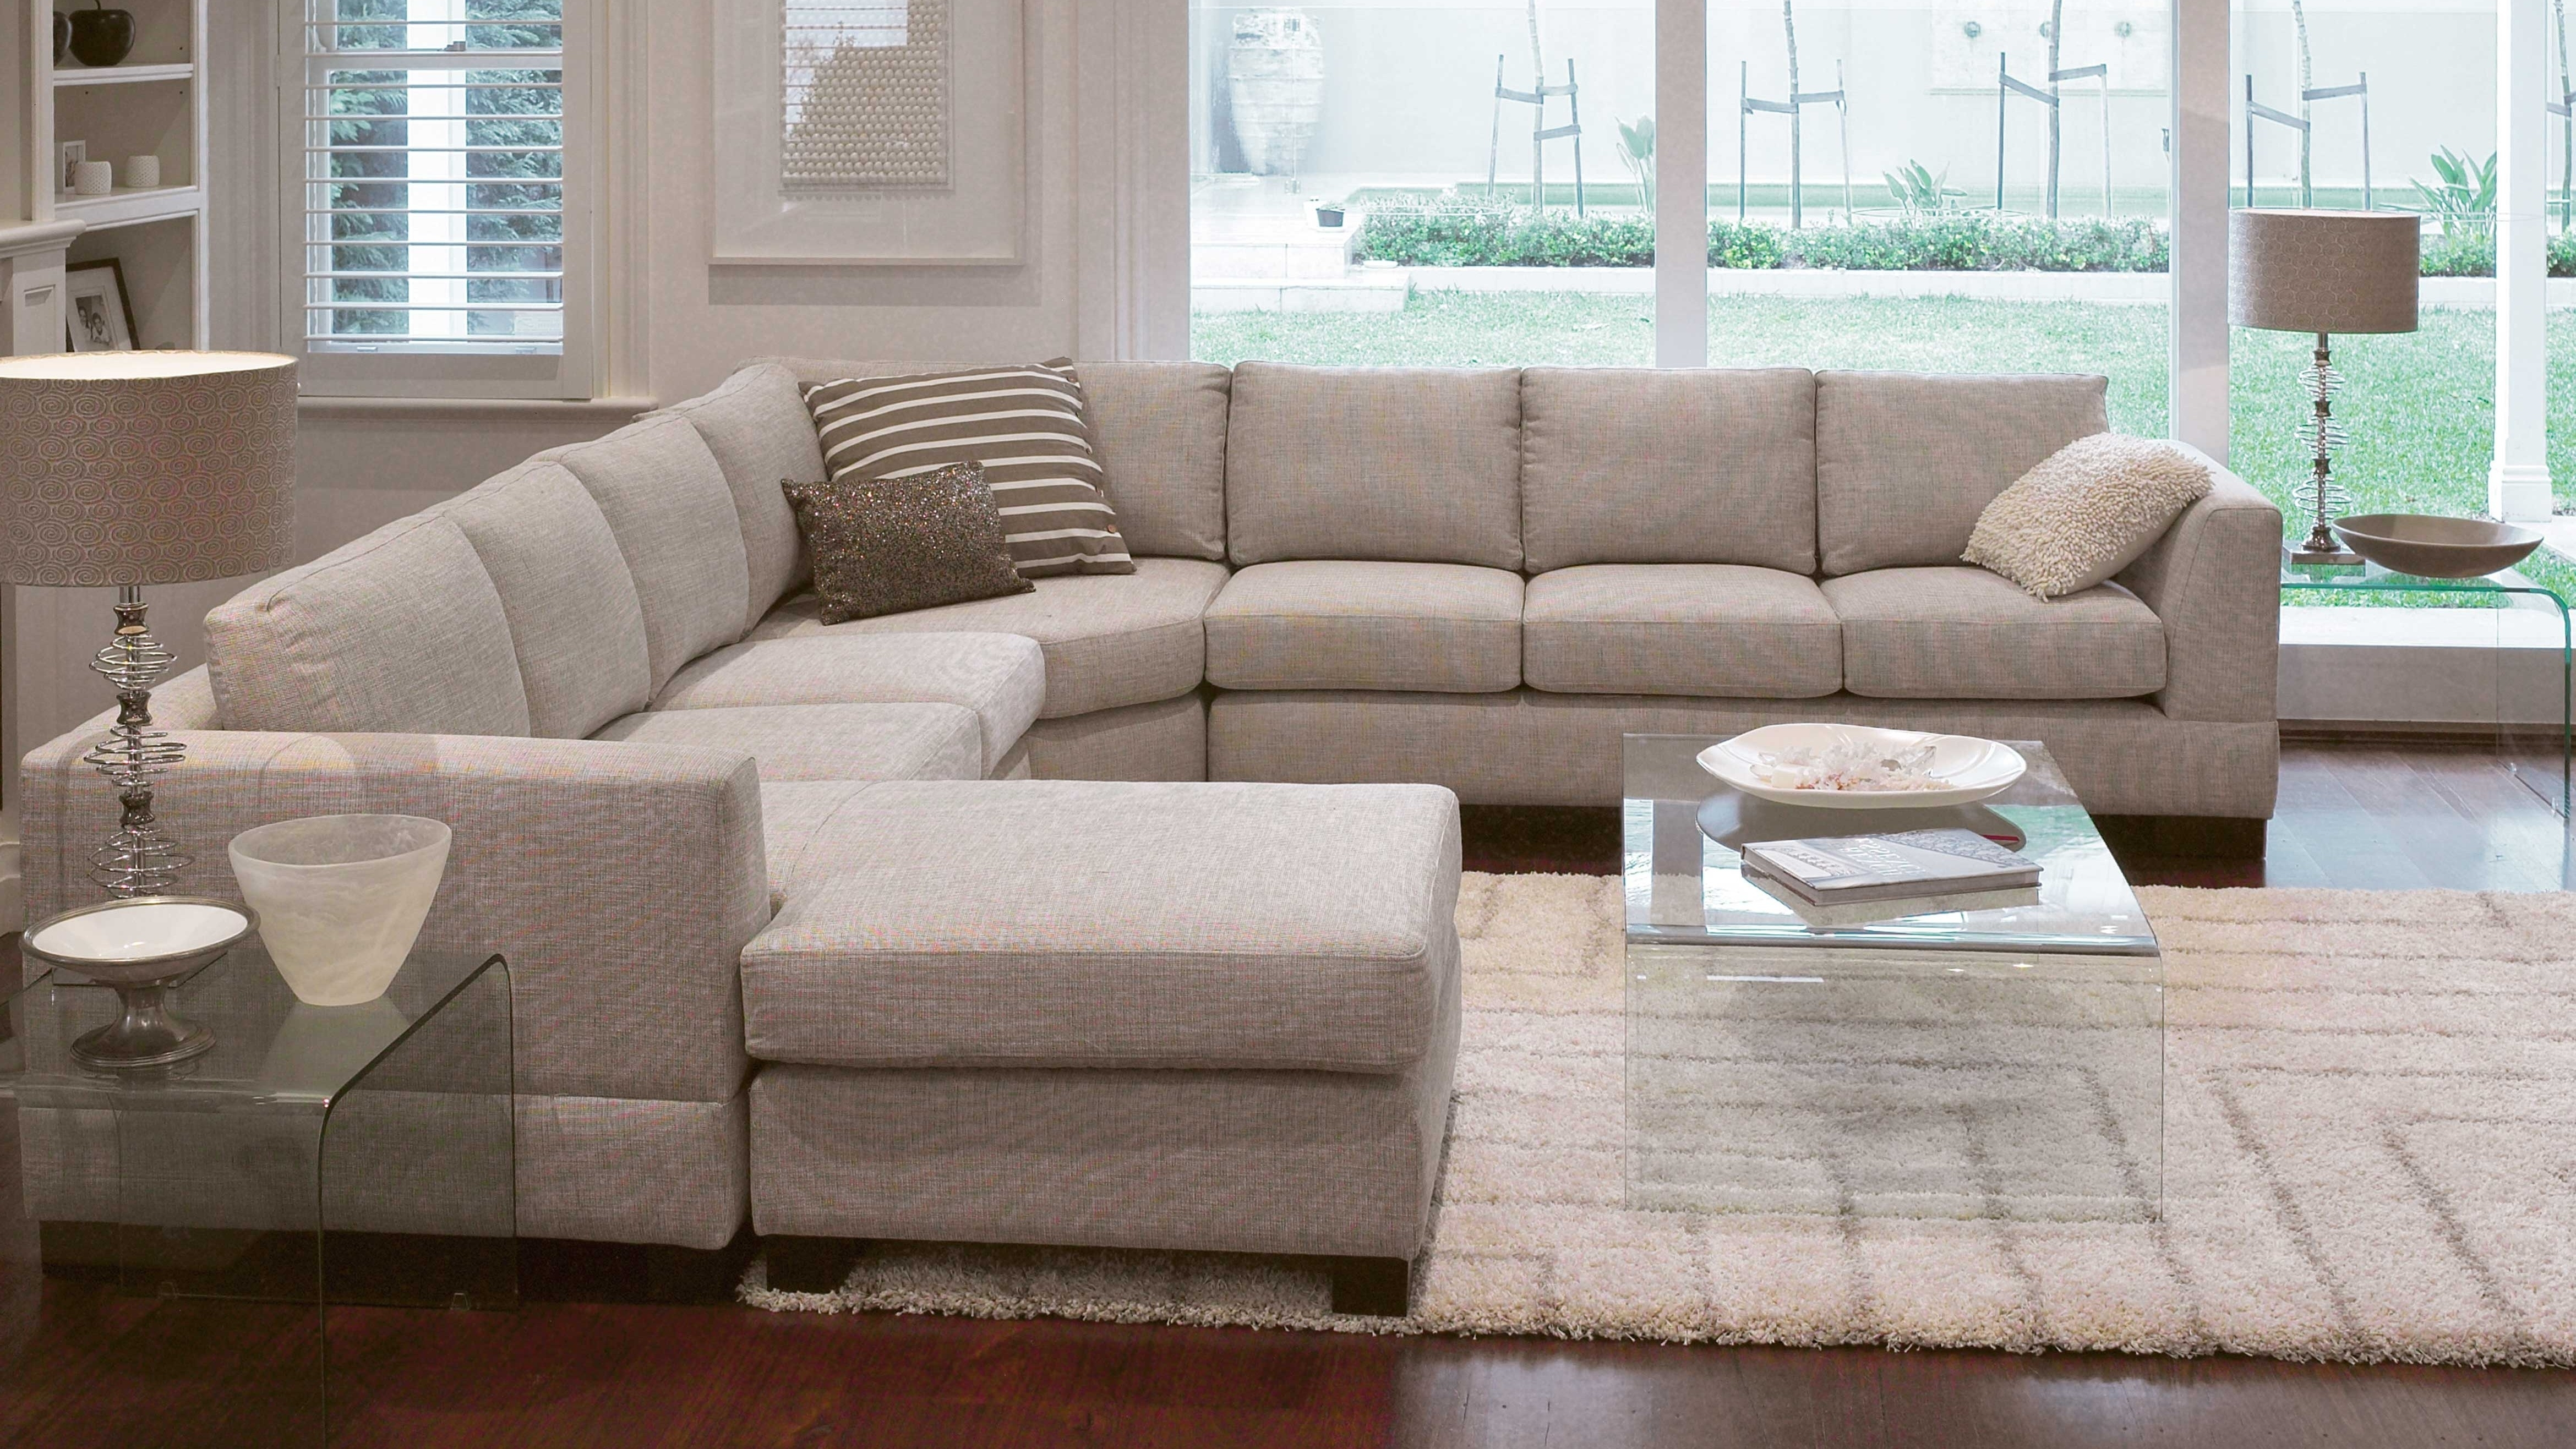 Nz Sectional Sofas Pertaining To Most Popular Couch With Storage And Bed Sofa Bed Gumtree Sectional With Storage (View 5 of 15)